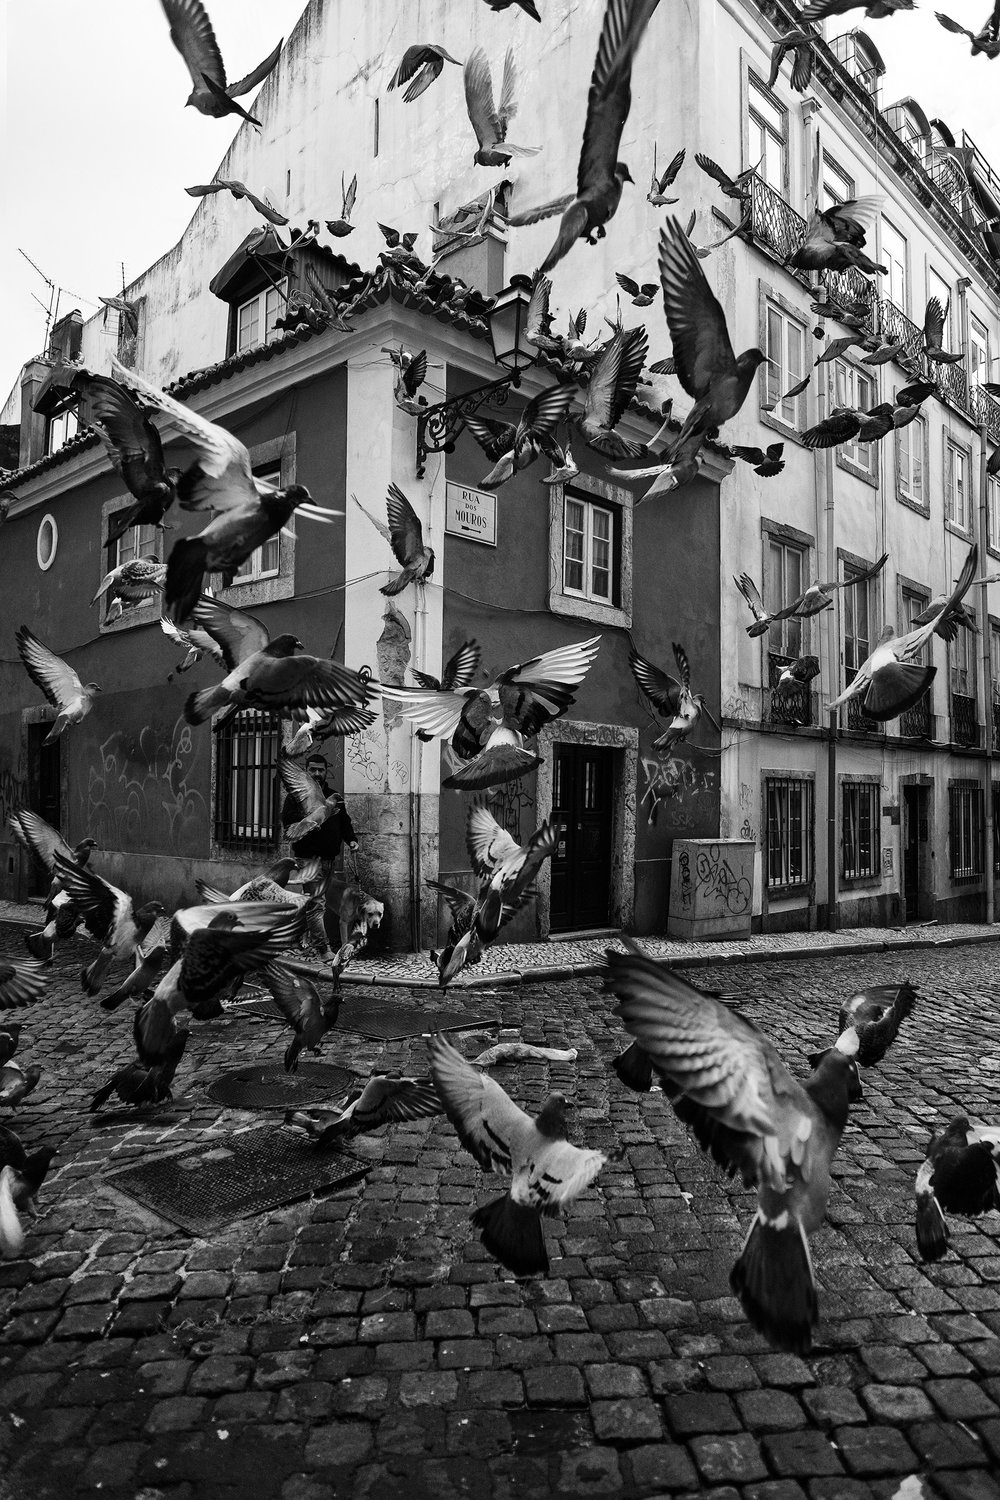 The Birds Pigeons take to the skies as a man walks his dog in the streets of Bairro Alto, Lisbon